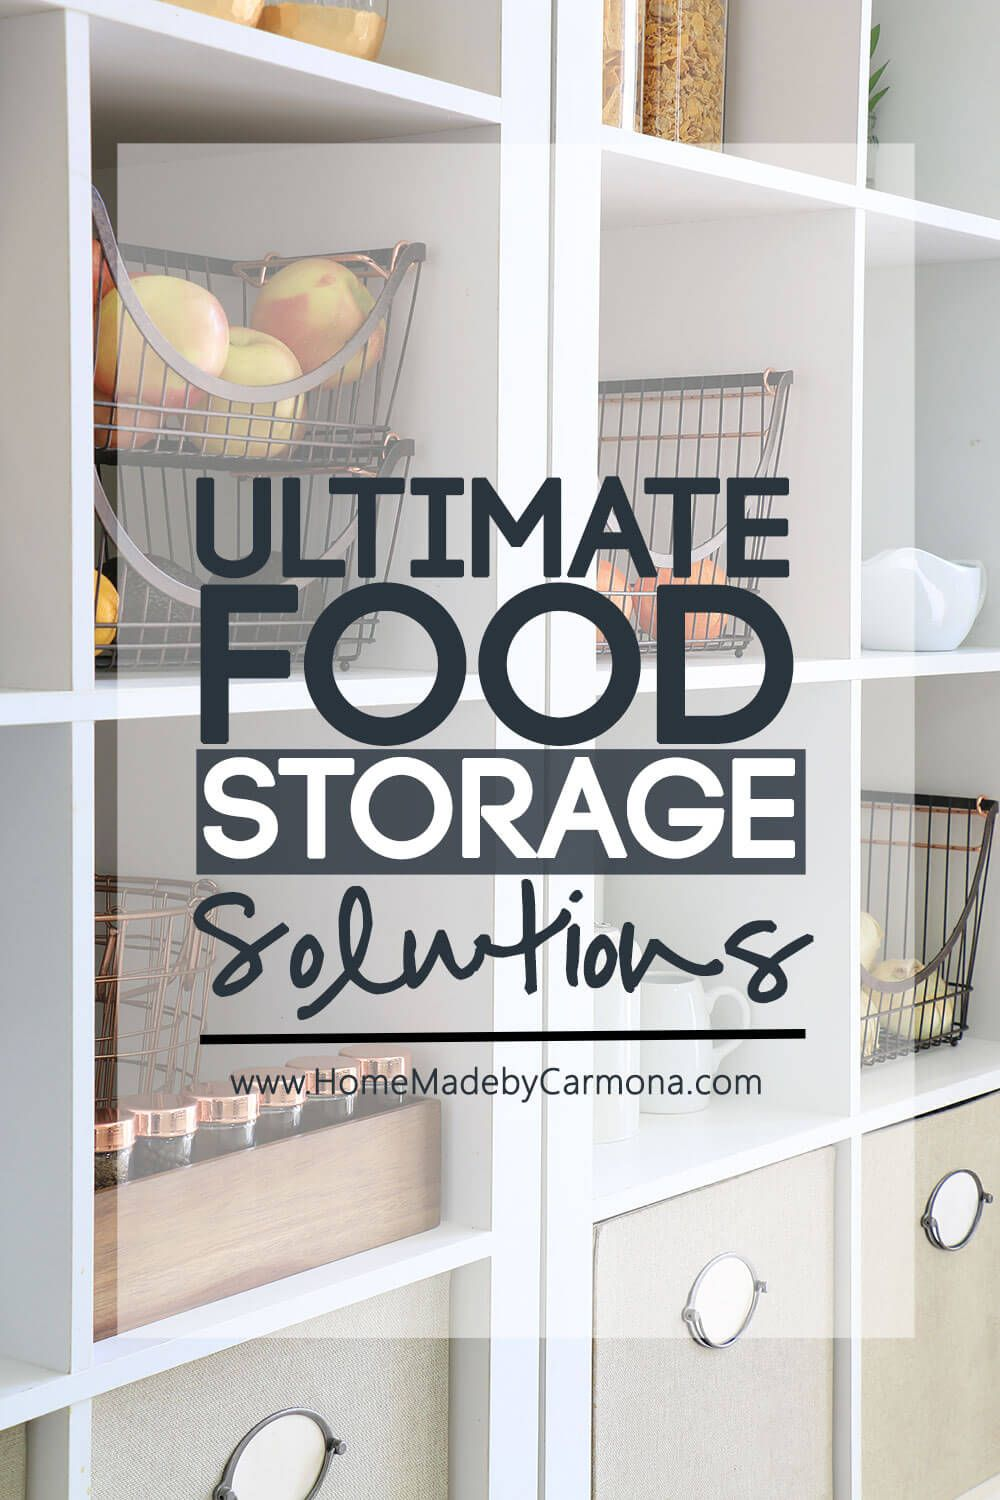 Food Storage And The Unfortunate Mouse Mishap | Food storage ...